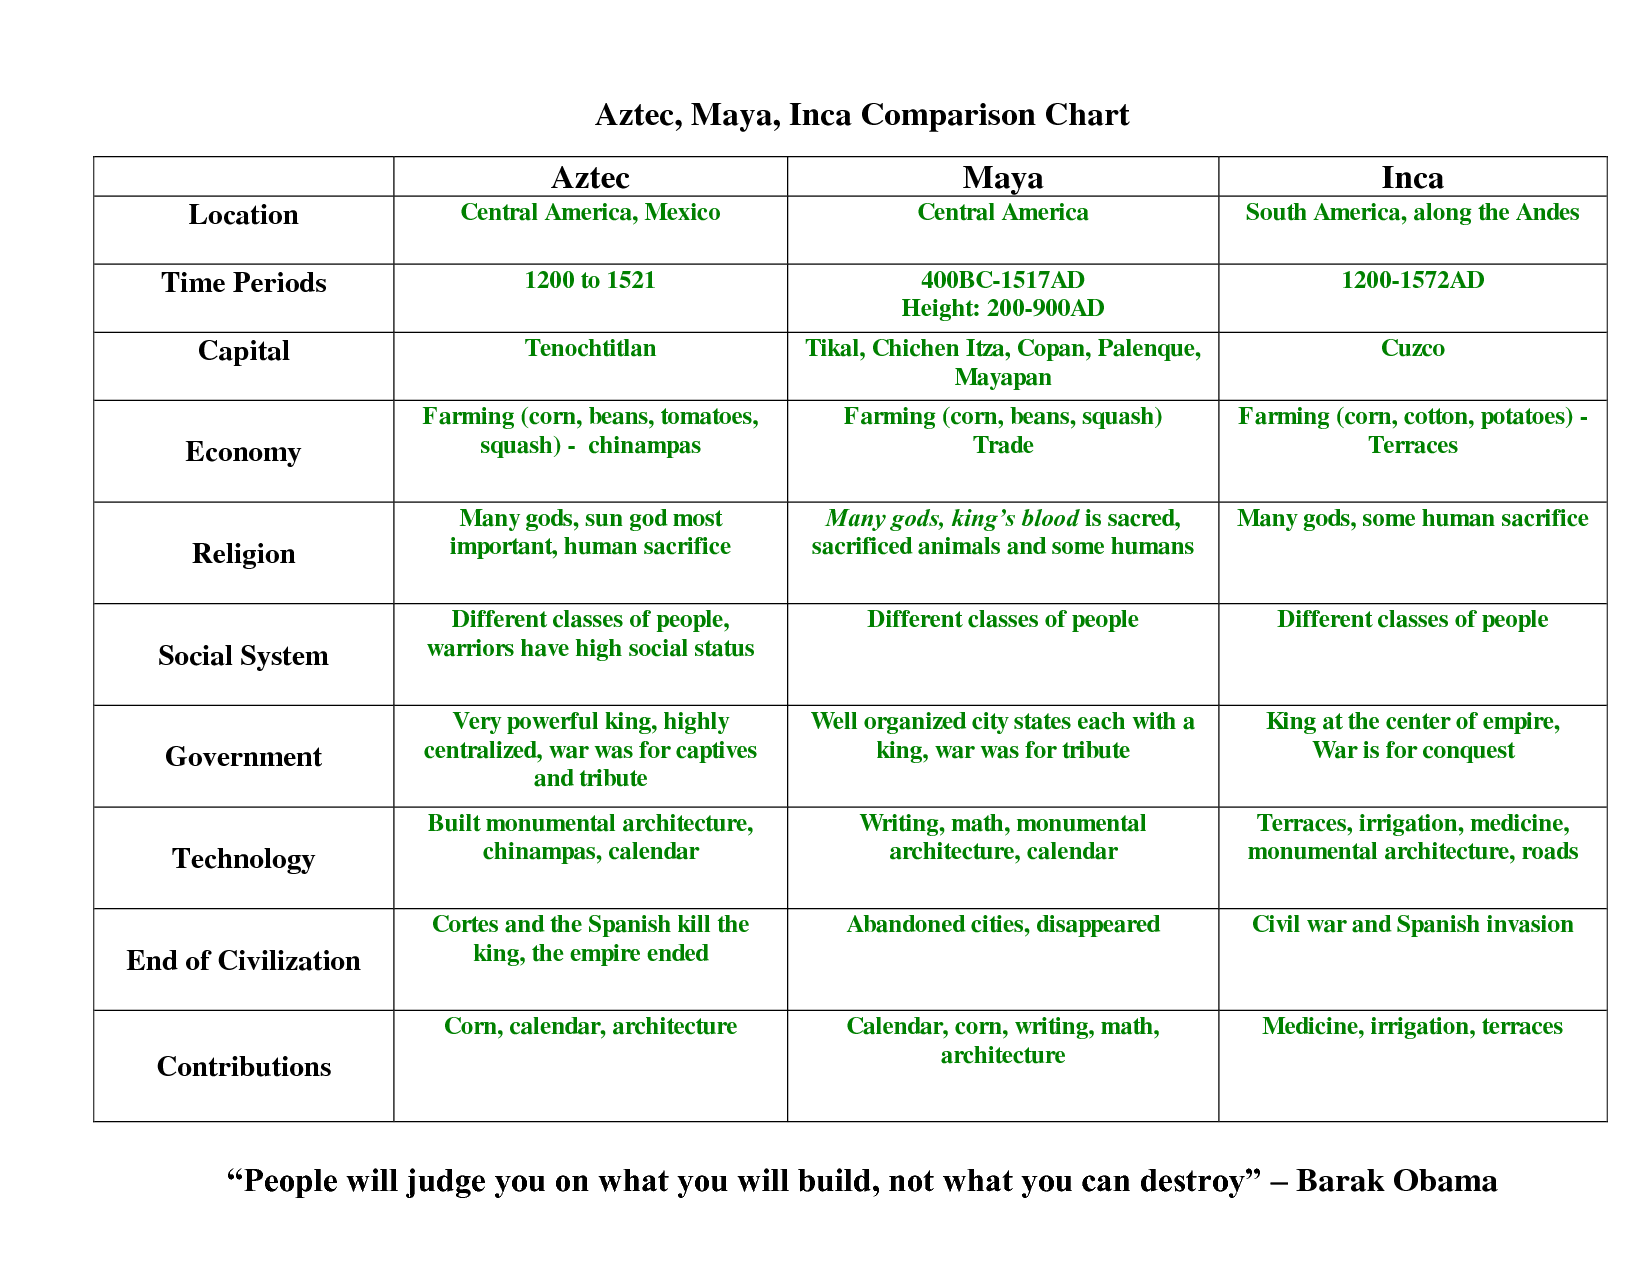 the comparison of aztec and mayan religion essay The comparison of aztec and mayan religion essay sample the aztec and mayan civilisations were the most of import civilisations from the new universe the europeans were amazed with the aztec and mayan civilizations their ways of life and their engineering.